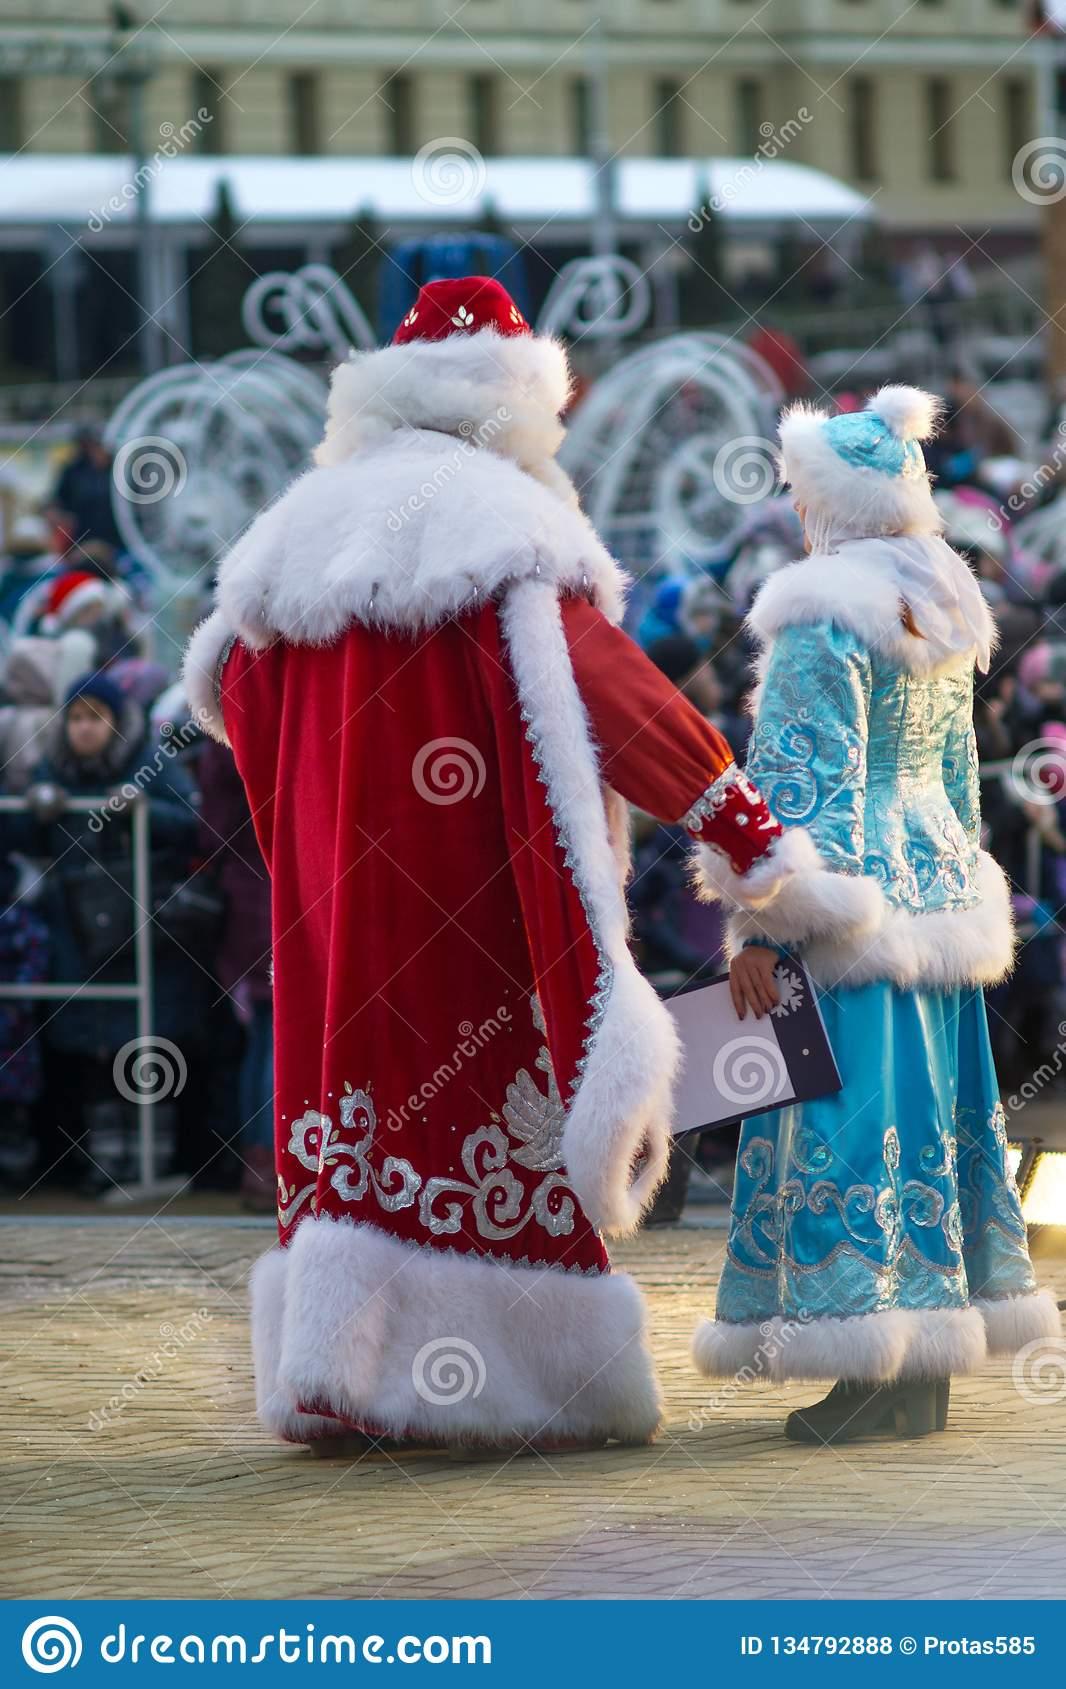 Father Frost and the Snow Maiden congratulate people merry Christmas